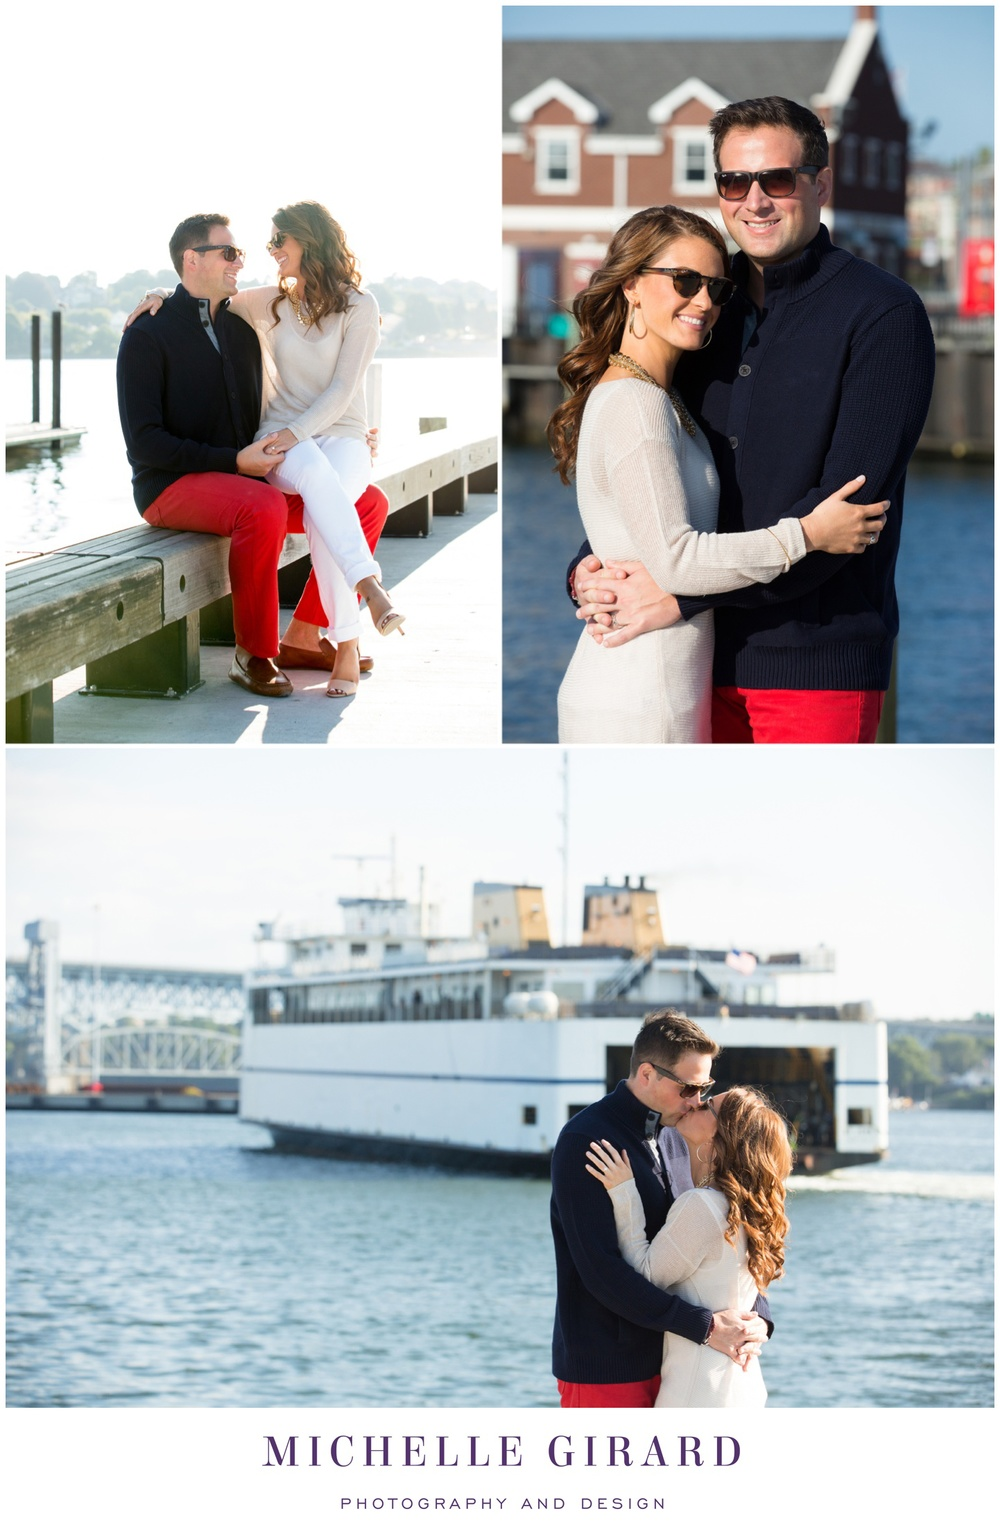 NewLondonFerry_EngagementSession_MichelleGirardPhotography01.jpg